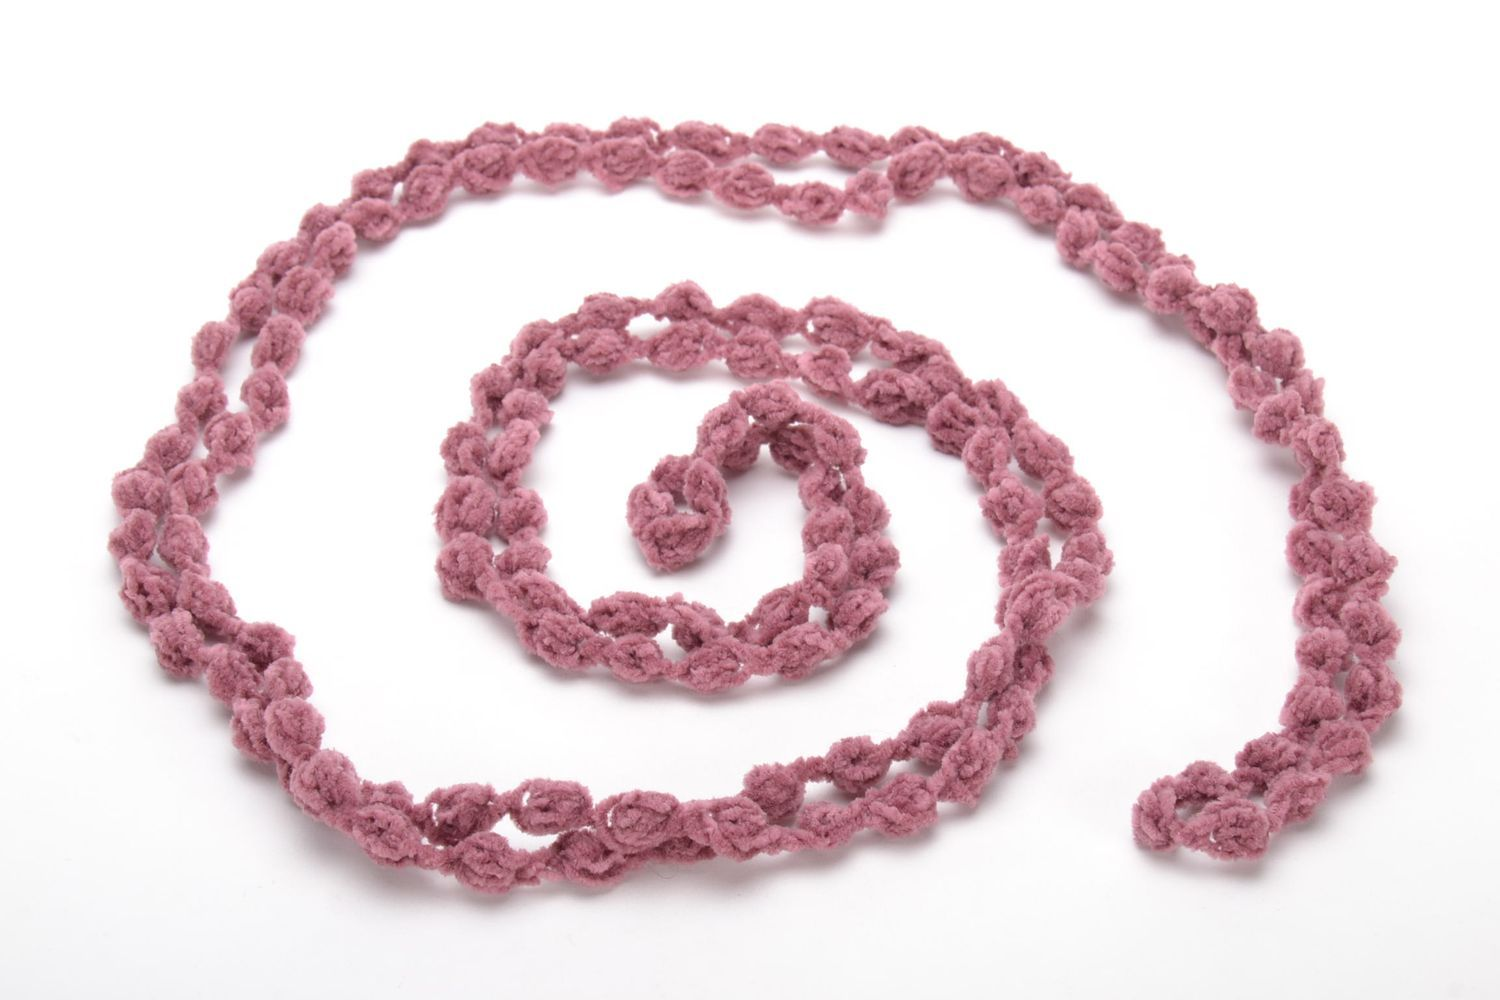 Crochet multi-row necklace photo 4